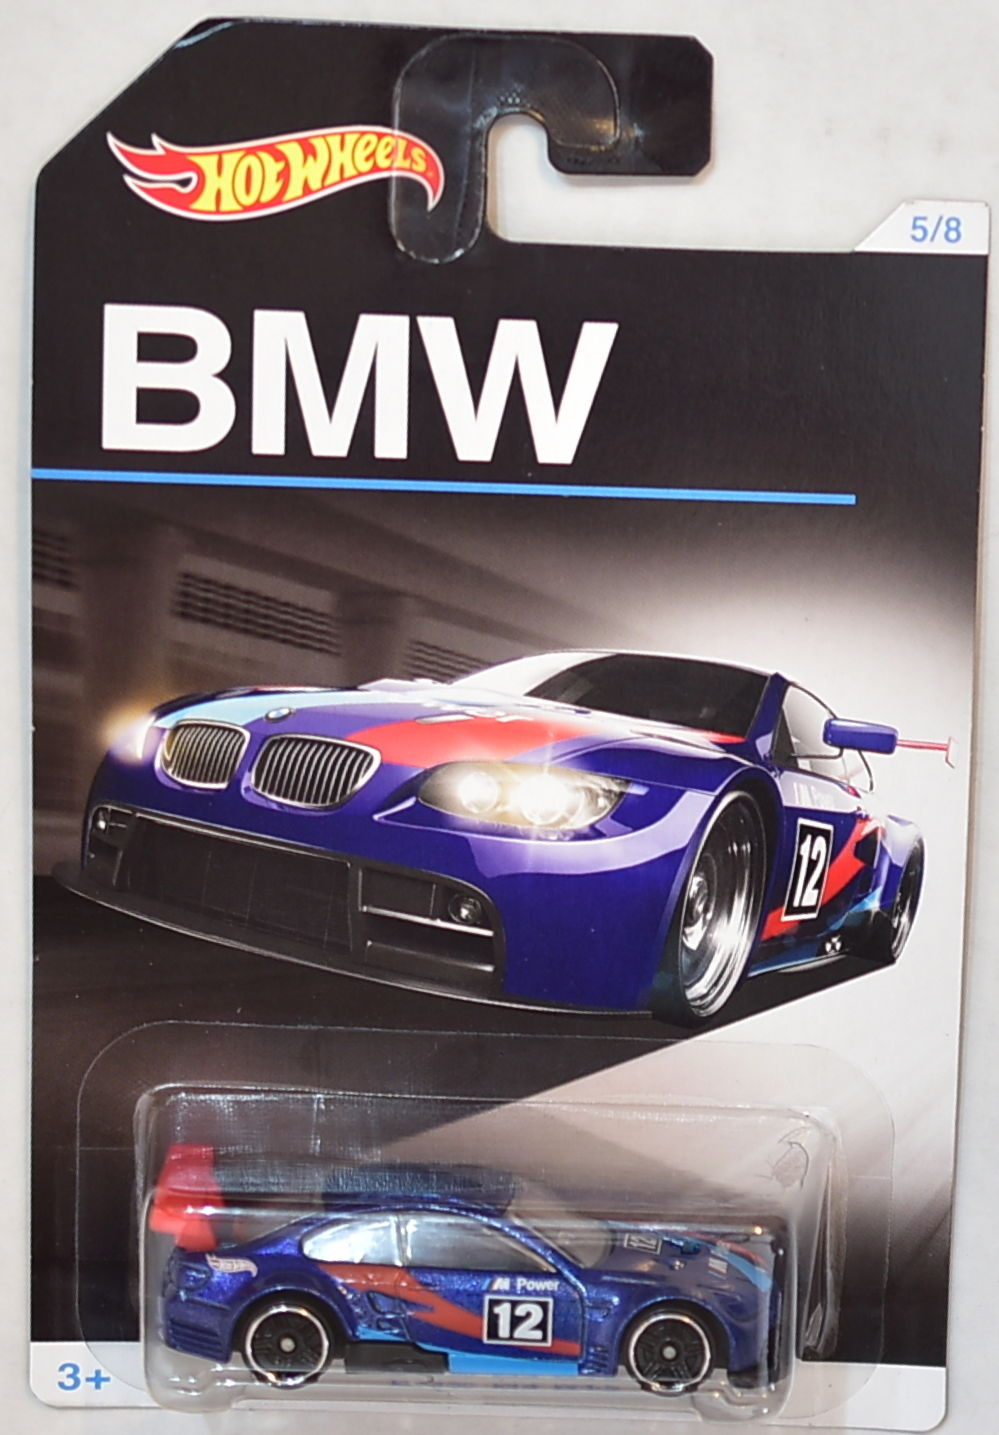 Hot Wheels Bmw Series 2016 M3 Gt2 5 8